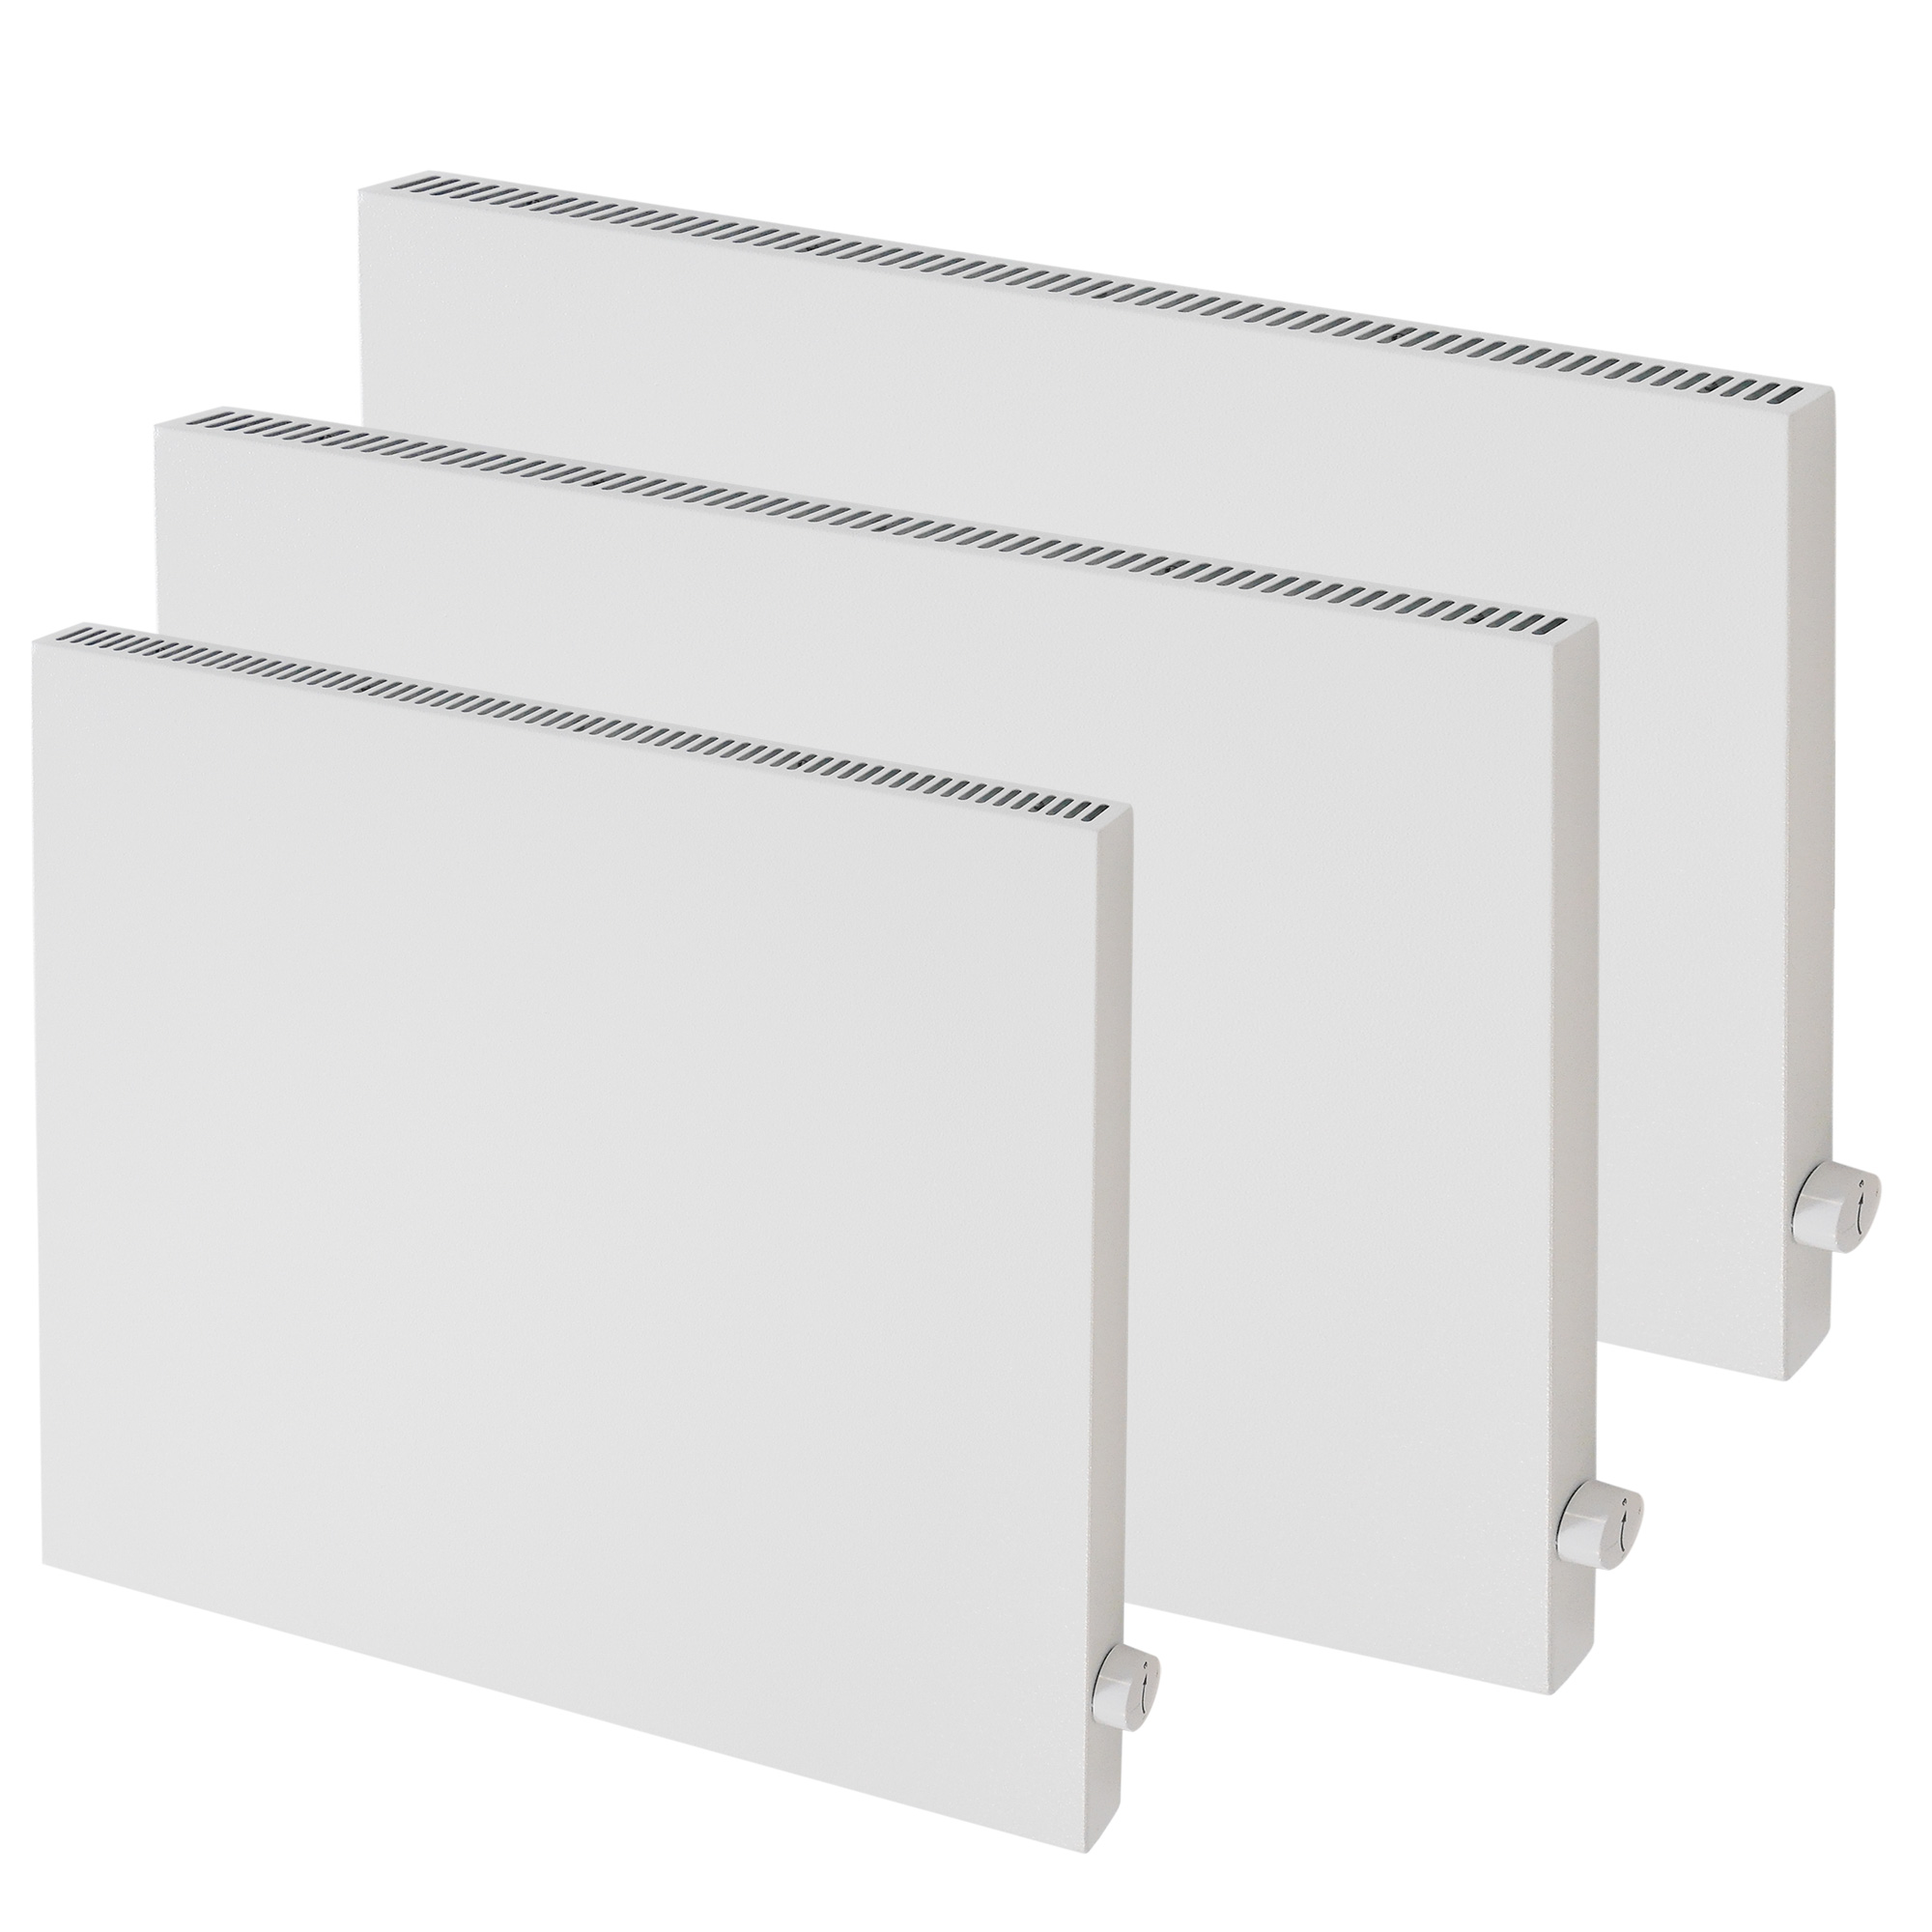 Panel-heaters-with-thermostat-dials-600-1200-watt-heat-output